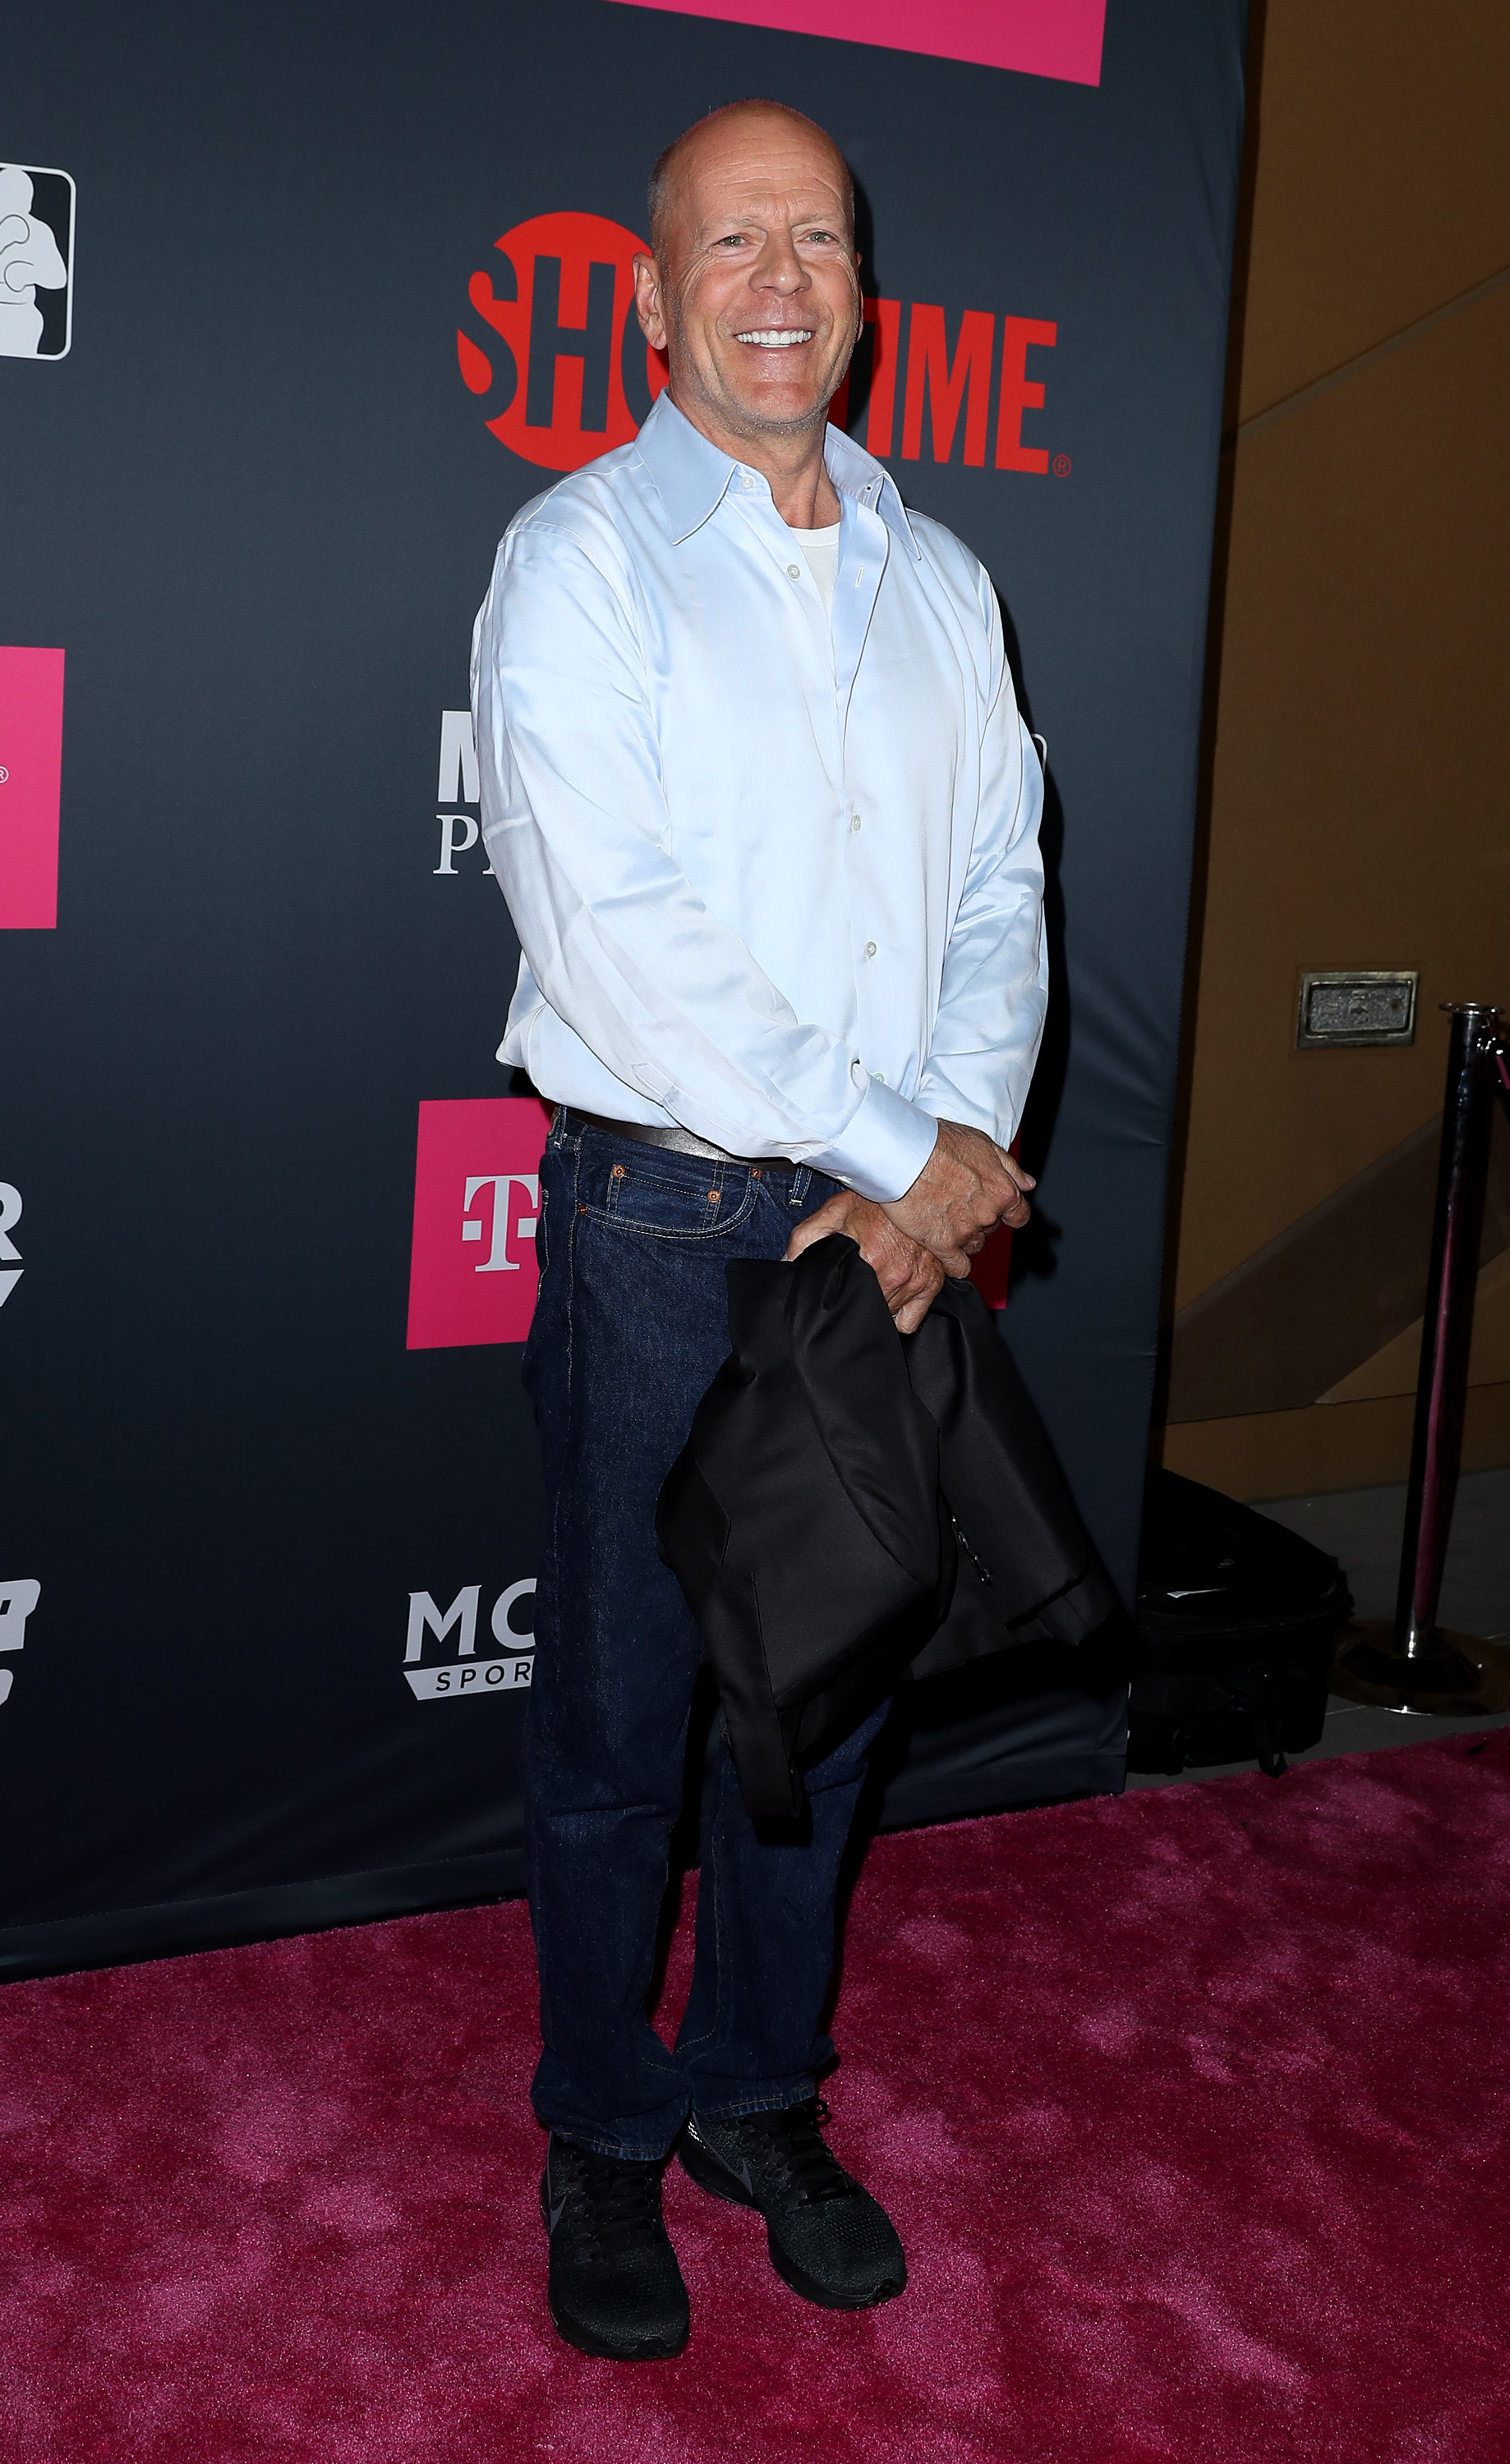 Bruce Willis arrives at the Mayweather vs. McGregor Pre Event VIP Party Red Carpet at T Mobile Arena in Las Vegas on Aug. 26, 2017.